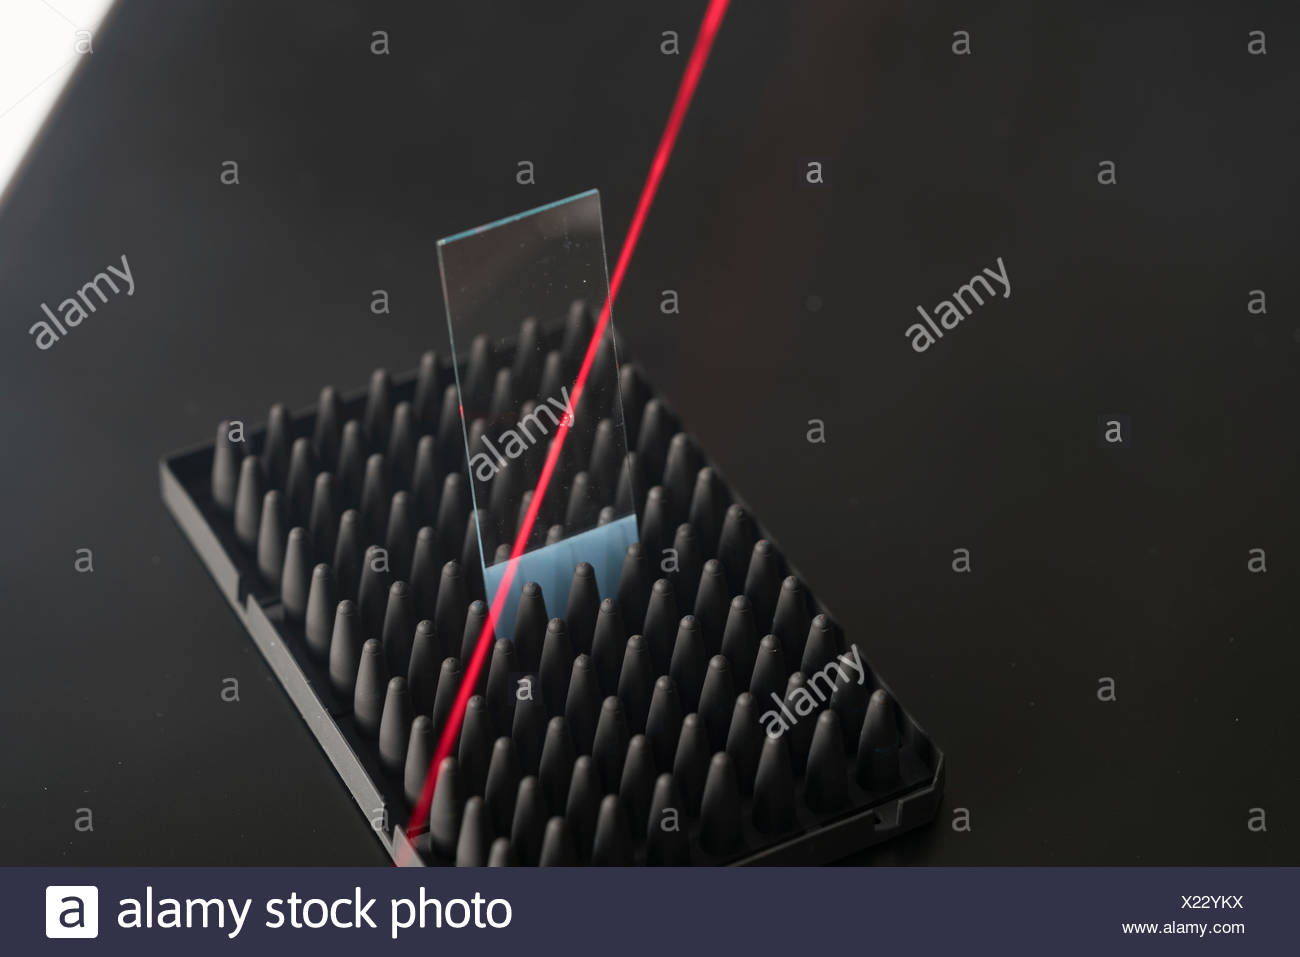 Microscope slide with red laser beam. - Stock Image